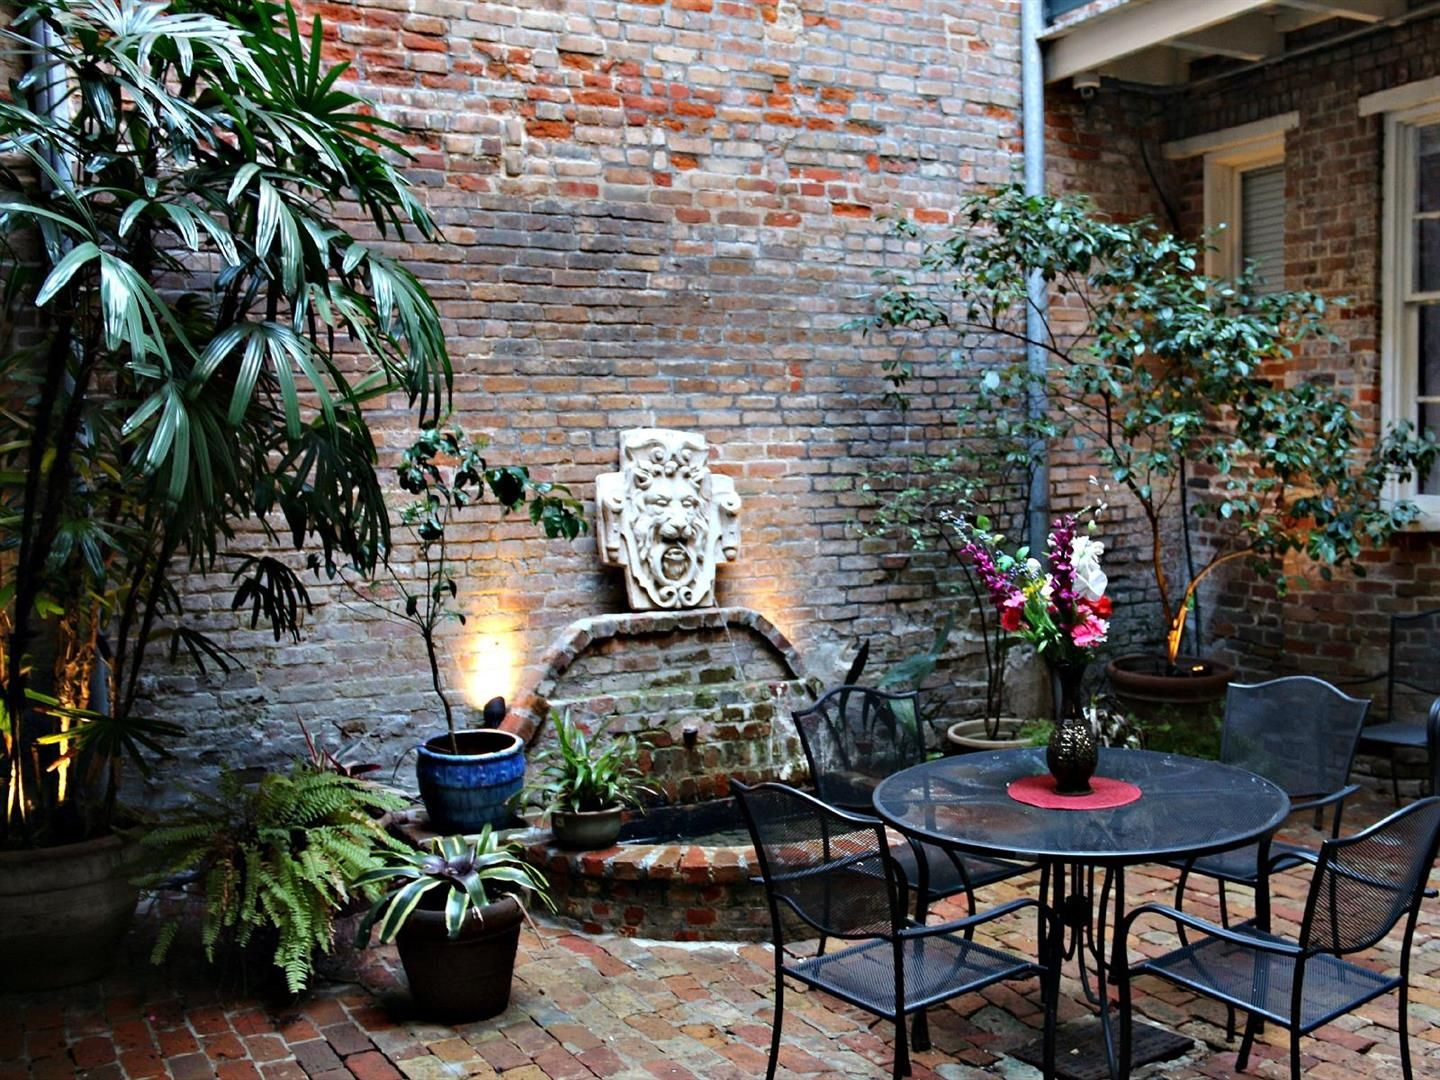 French Quarter Courtyard is Hidden